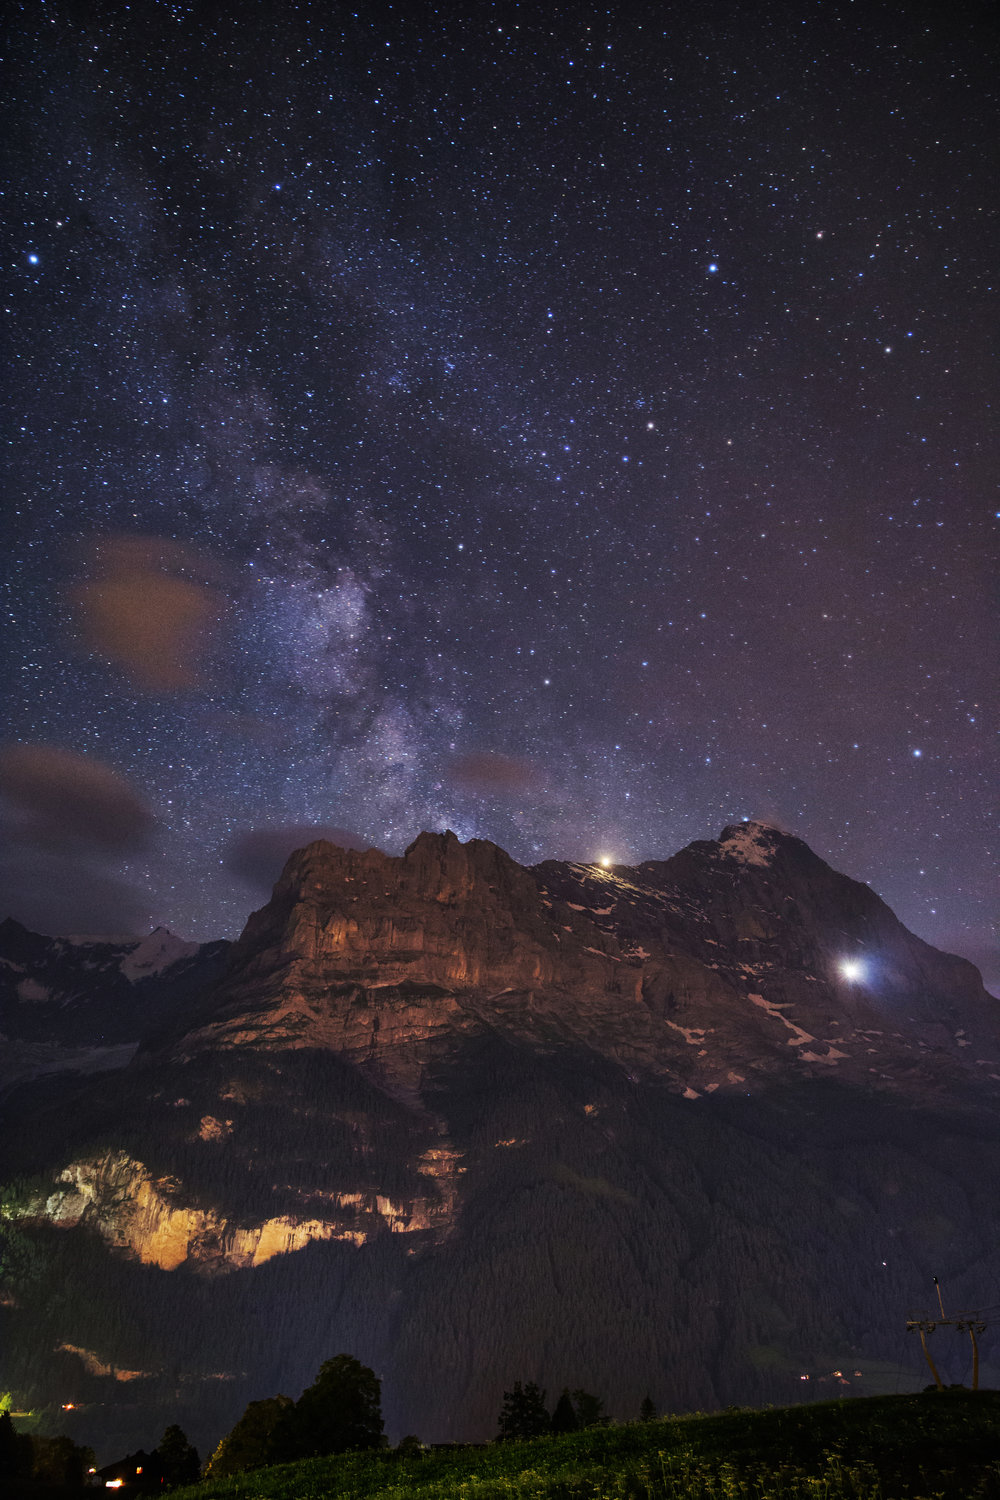 The Eiger Under the Milky Way